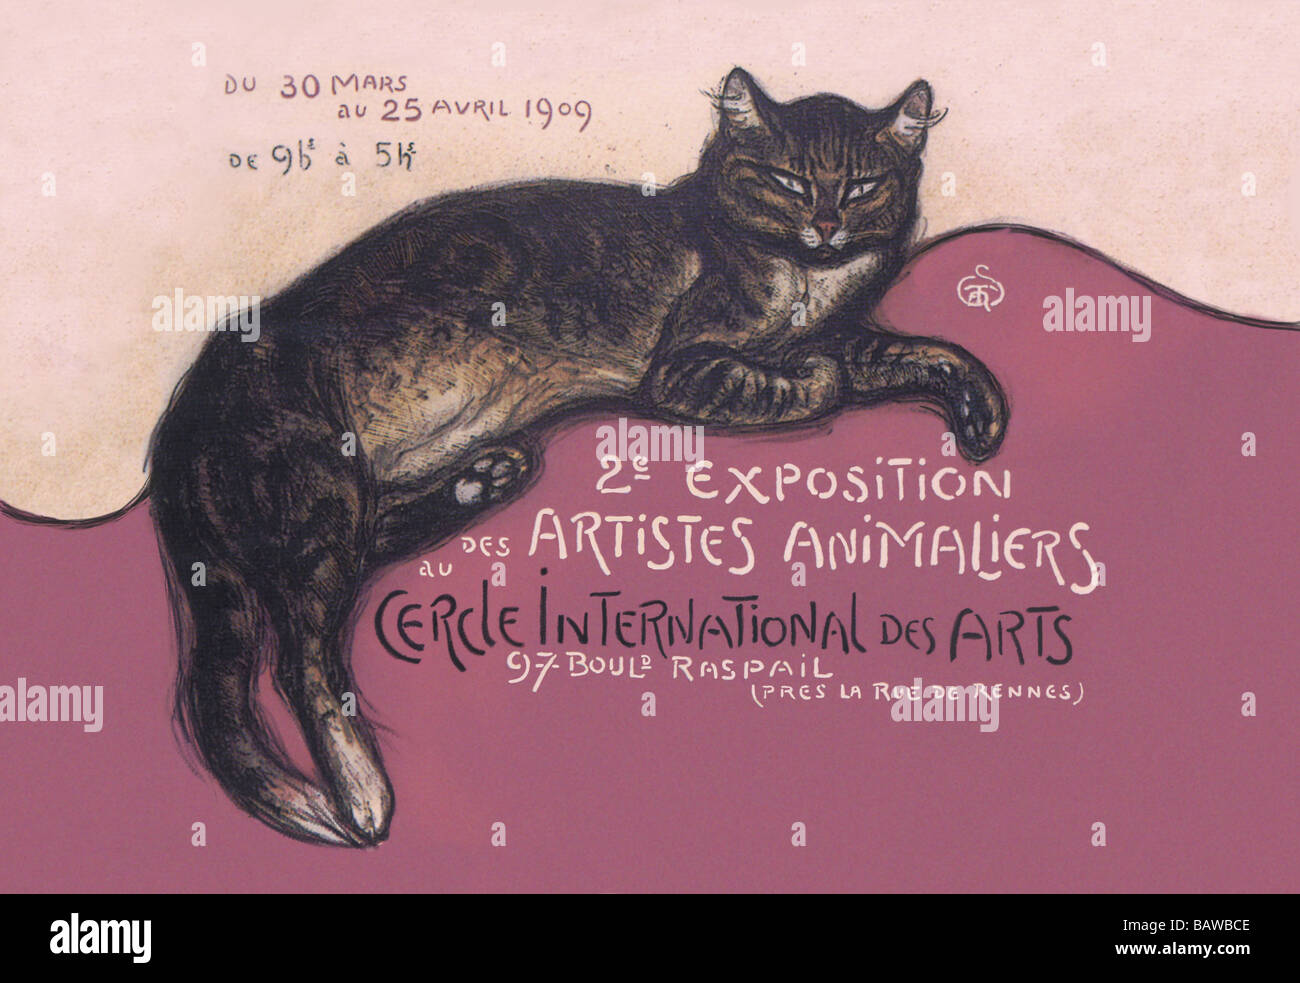 Exposition des Artistes Animaliers - Stock Image